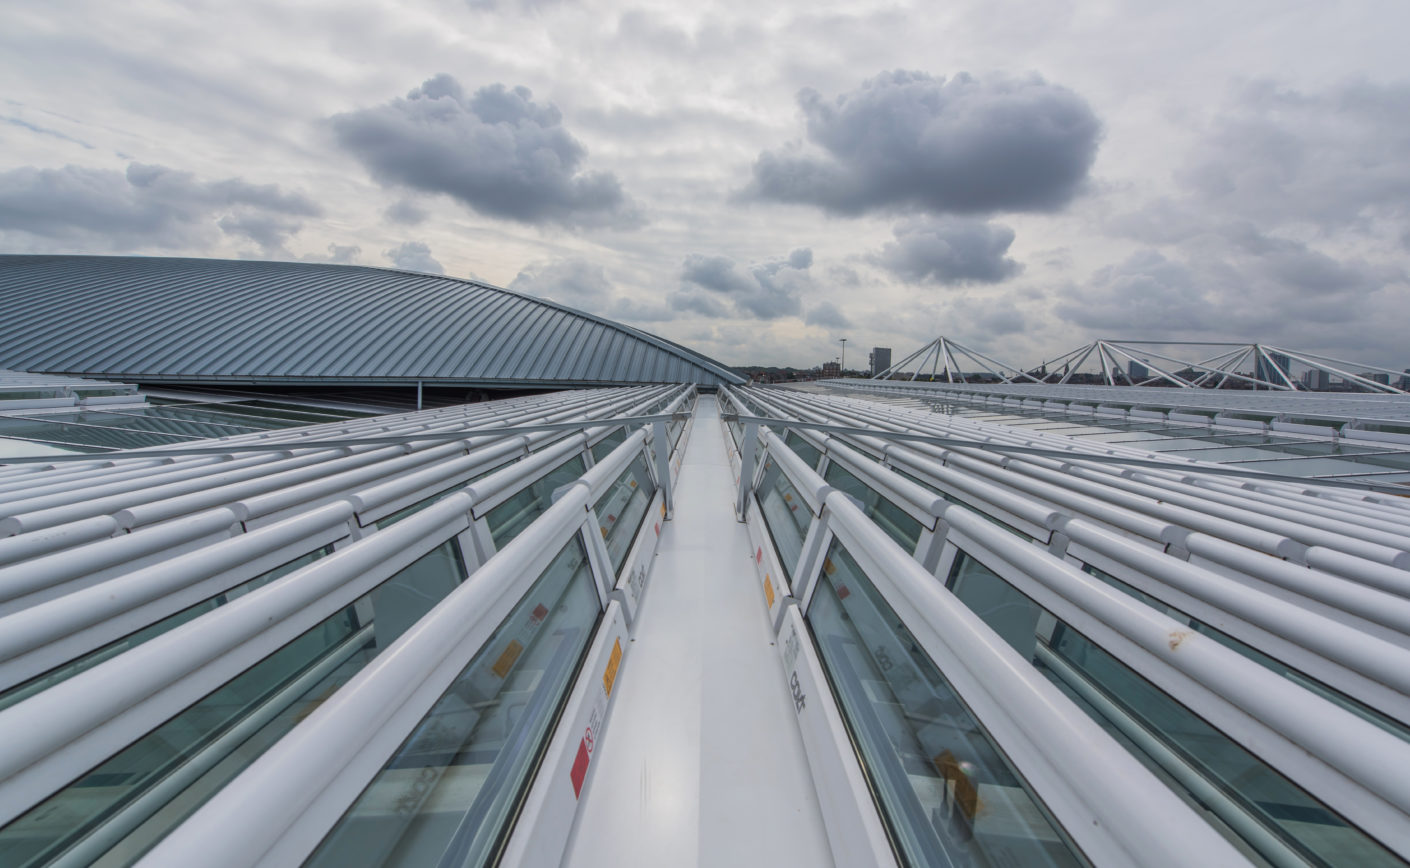 The louvered ventilators on the roof remove the warm air from the building and ensure a fresh air supply.